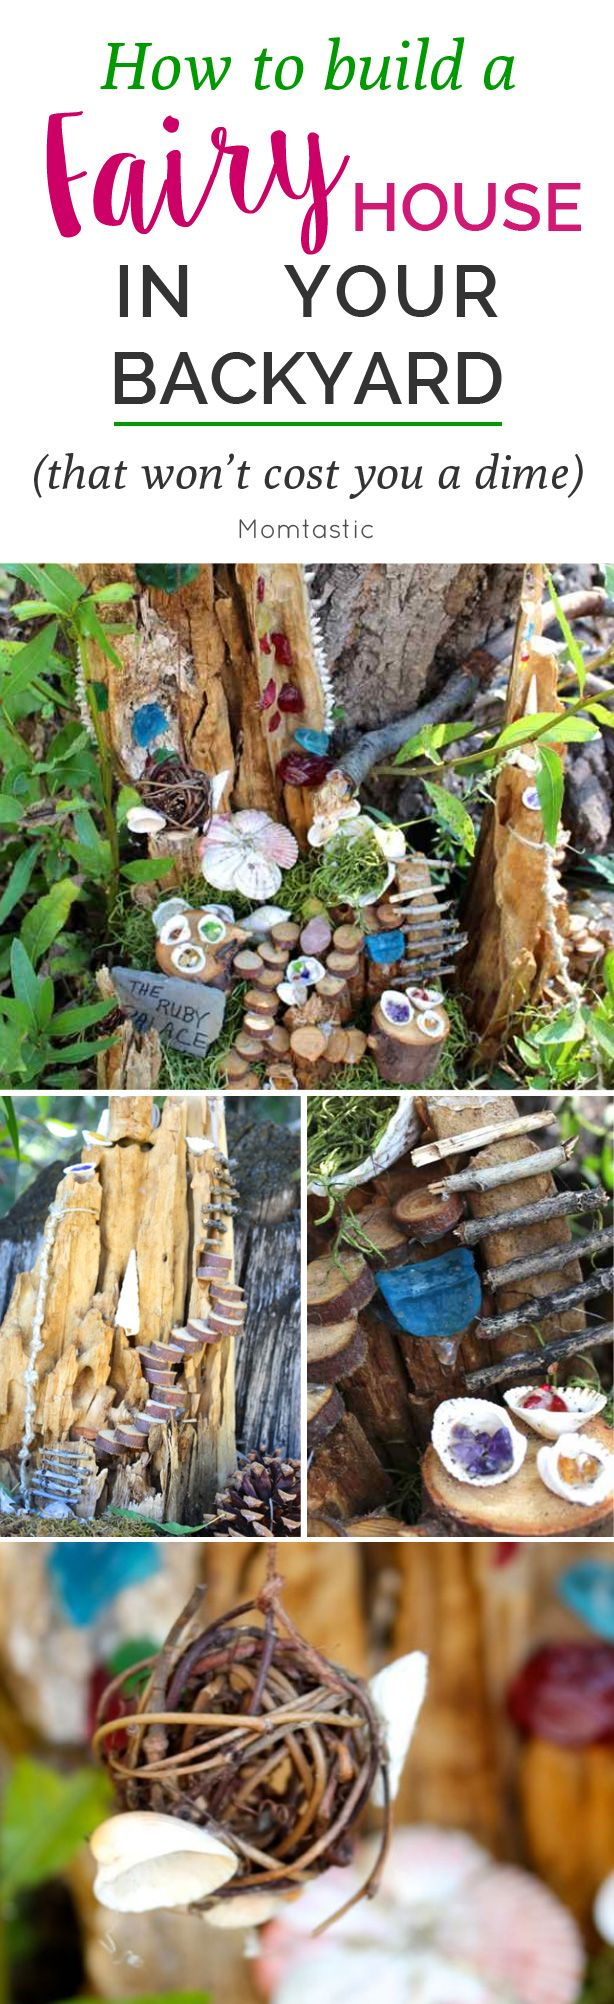 Bit by bit, we are going to transform a corner of our yard into an enchanted place where fairies can flutter and our inner child can be celebrated. The best part…it doesn't have to cost a thing. All you need is creativity, gifts from Mother Nature, and perhaps a sprinkle of pixie dust.